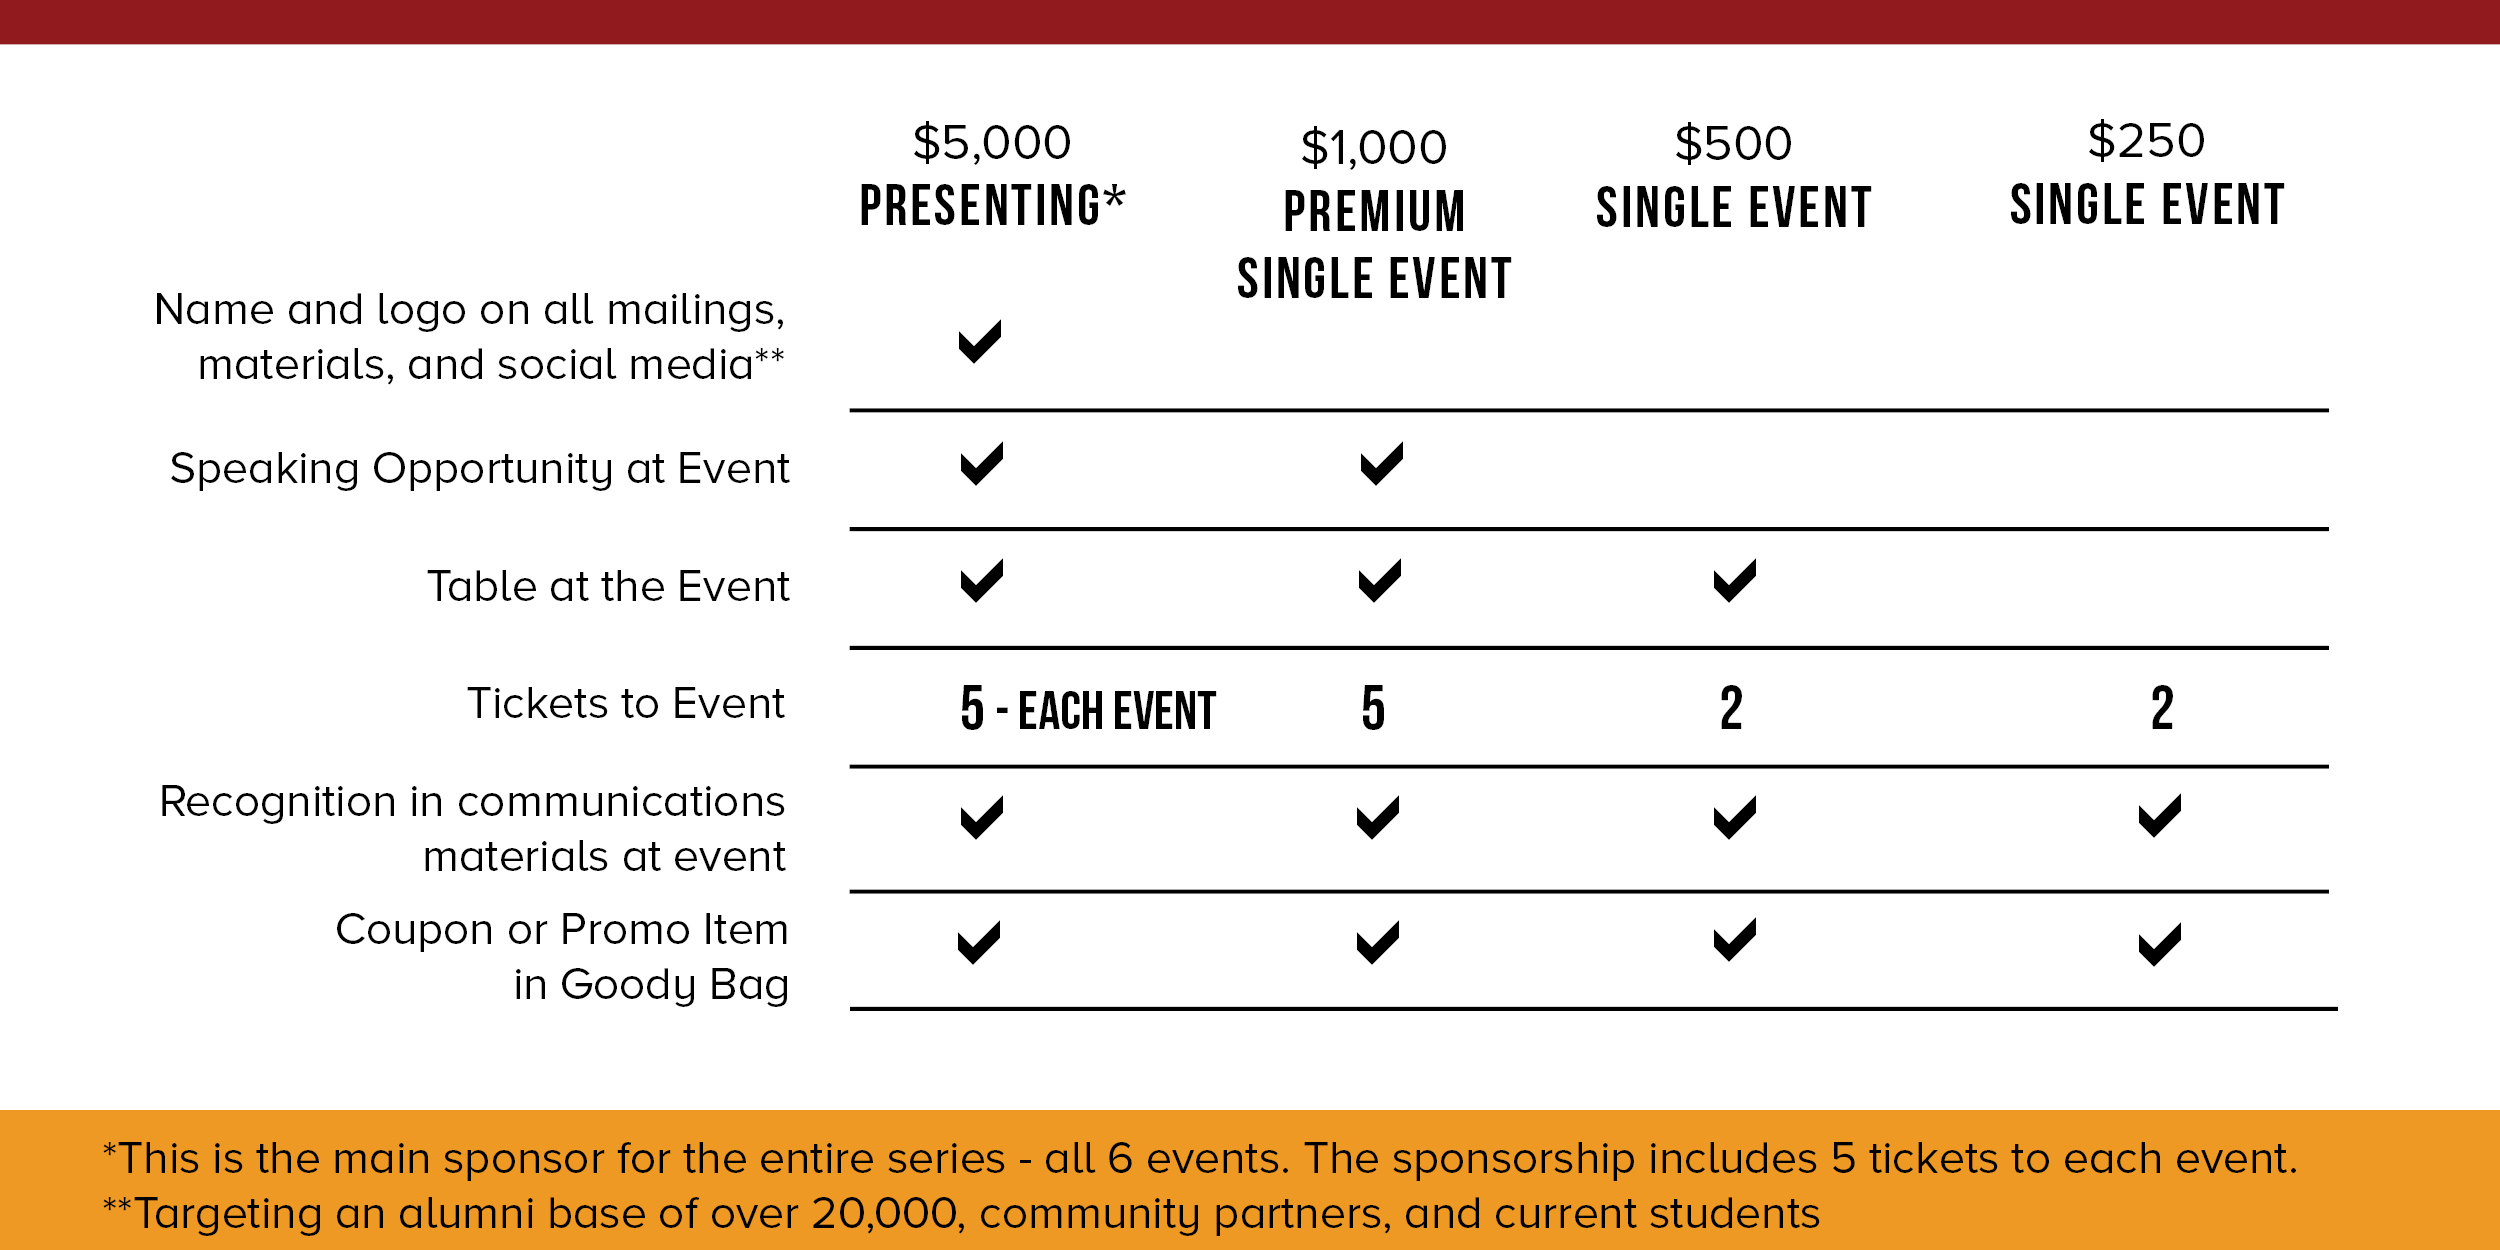 Sponsorship opportunities range from $250 to $5,000.